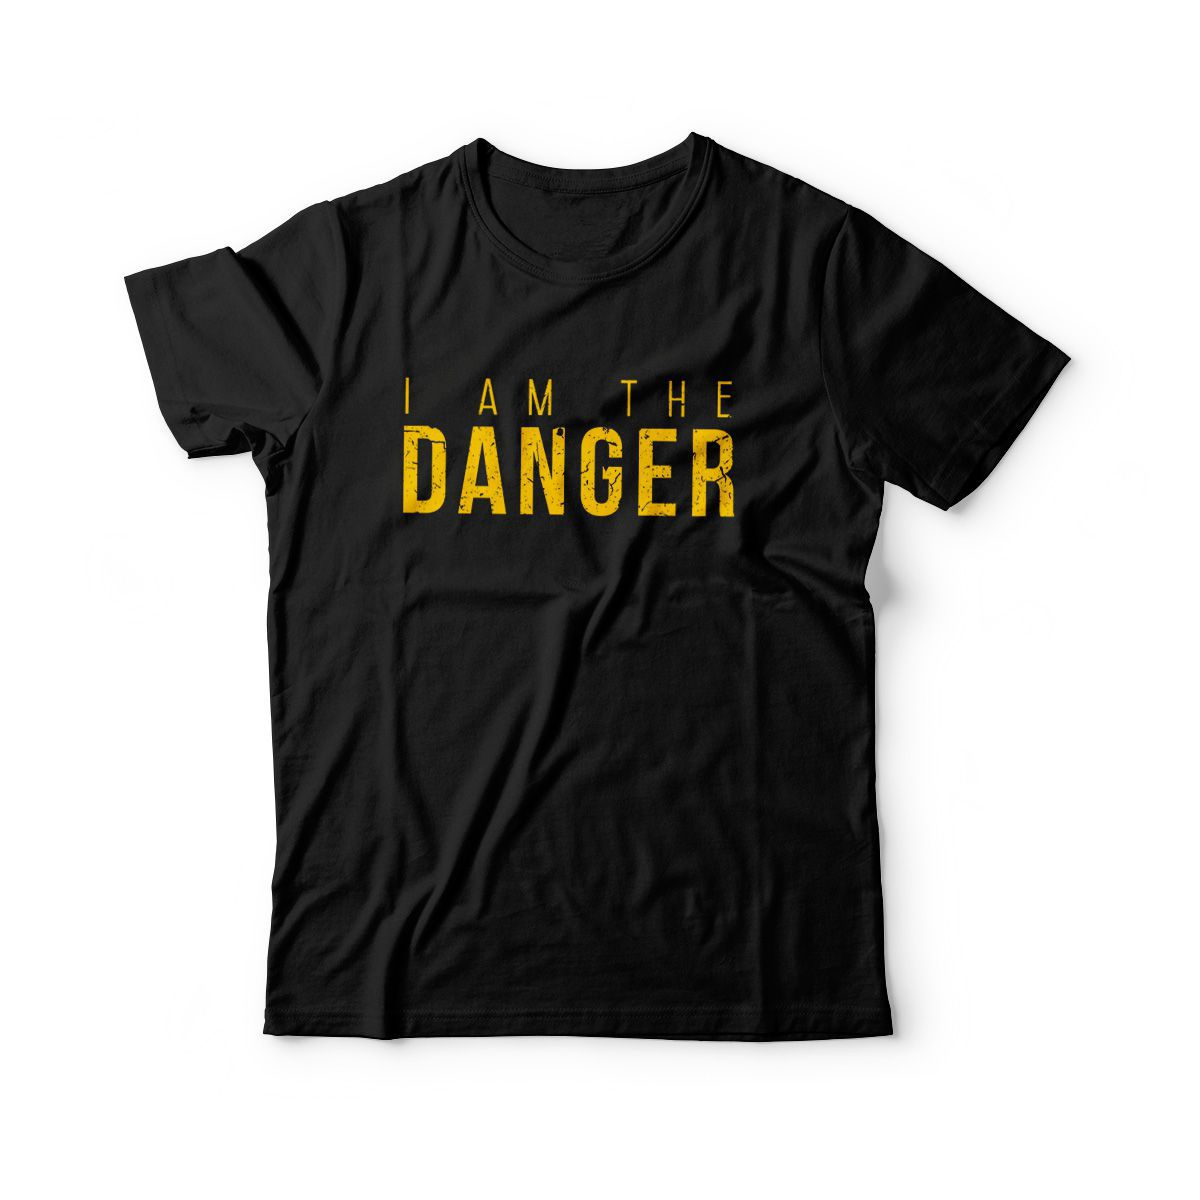 camiseta infantil engracada serie breaking bad danger